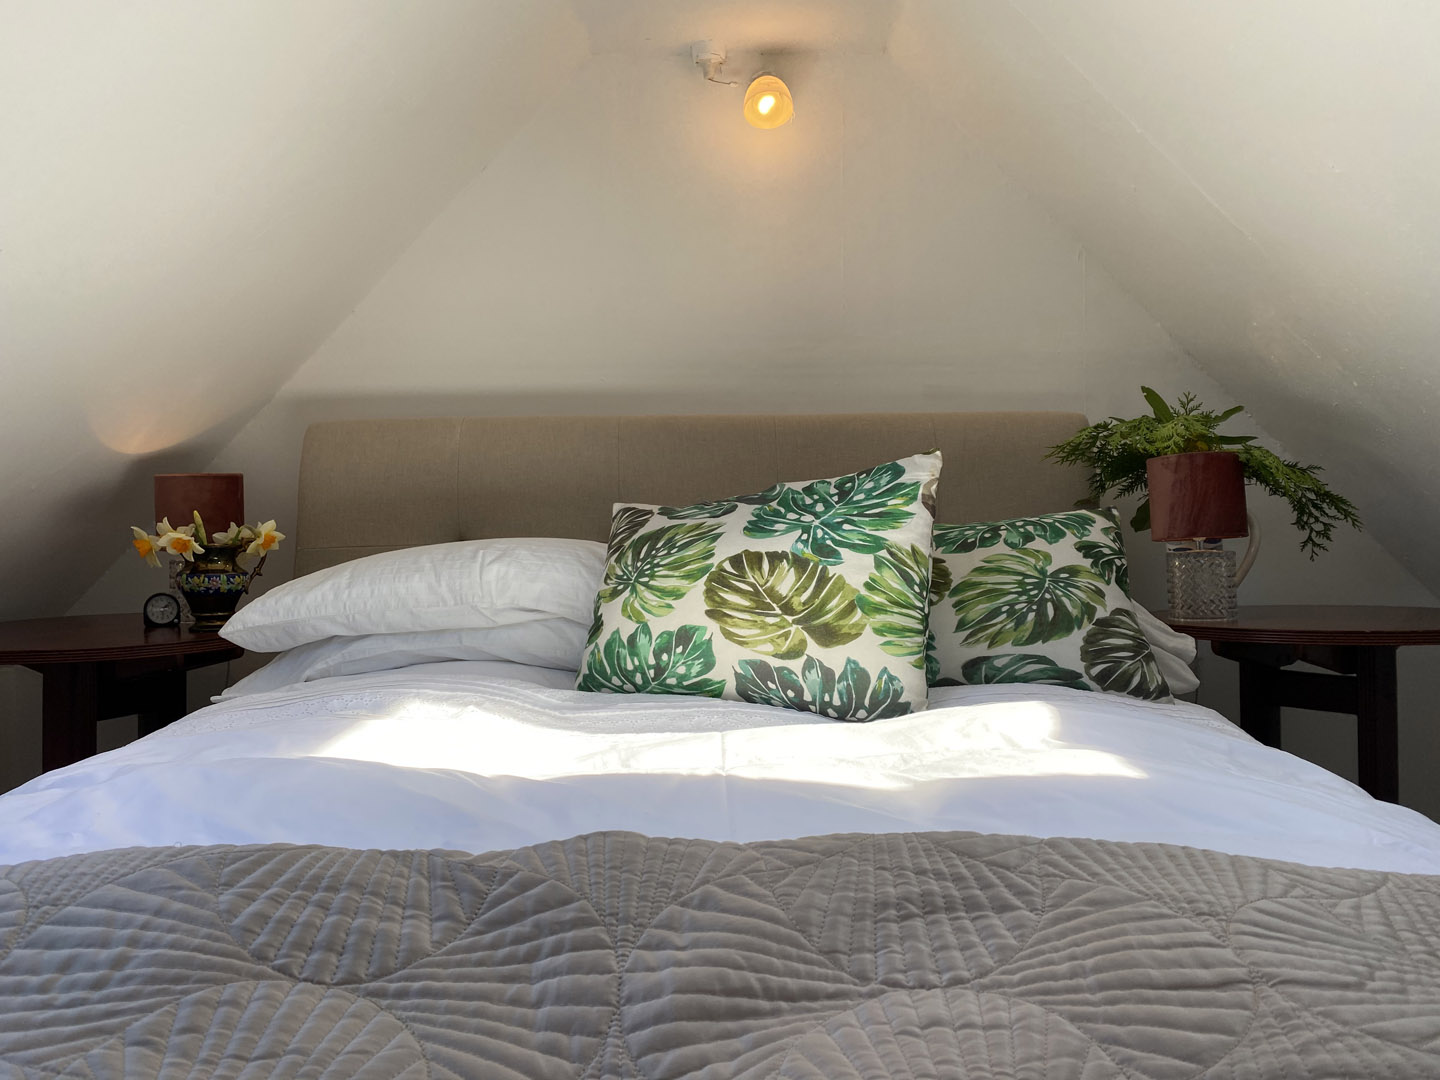 Boho style bedroom | Hotel in the Highlands